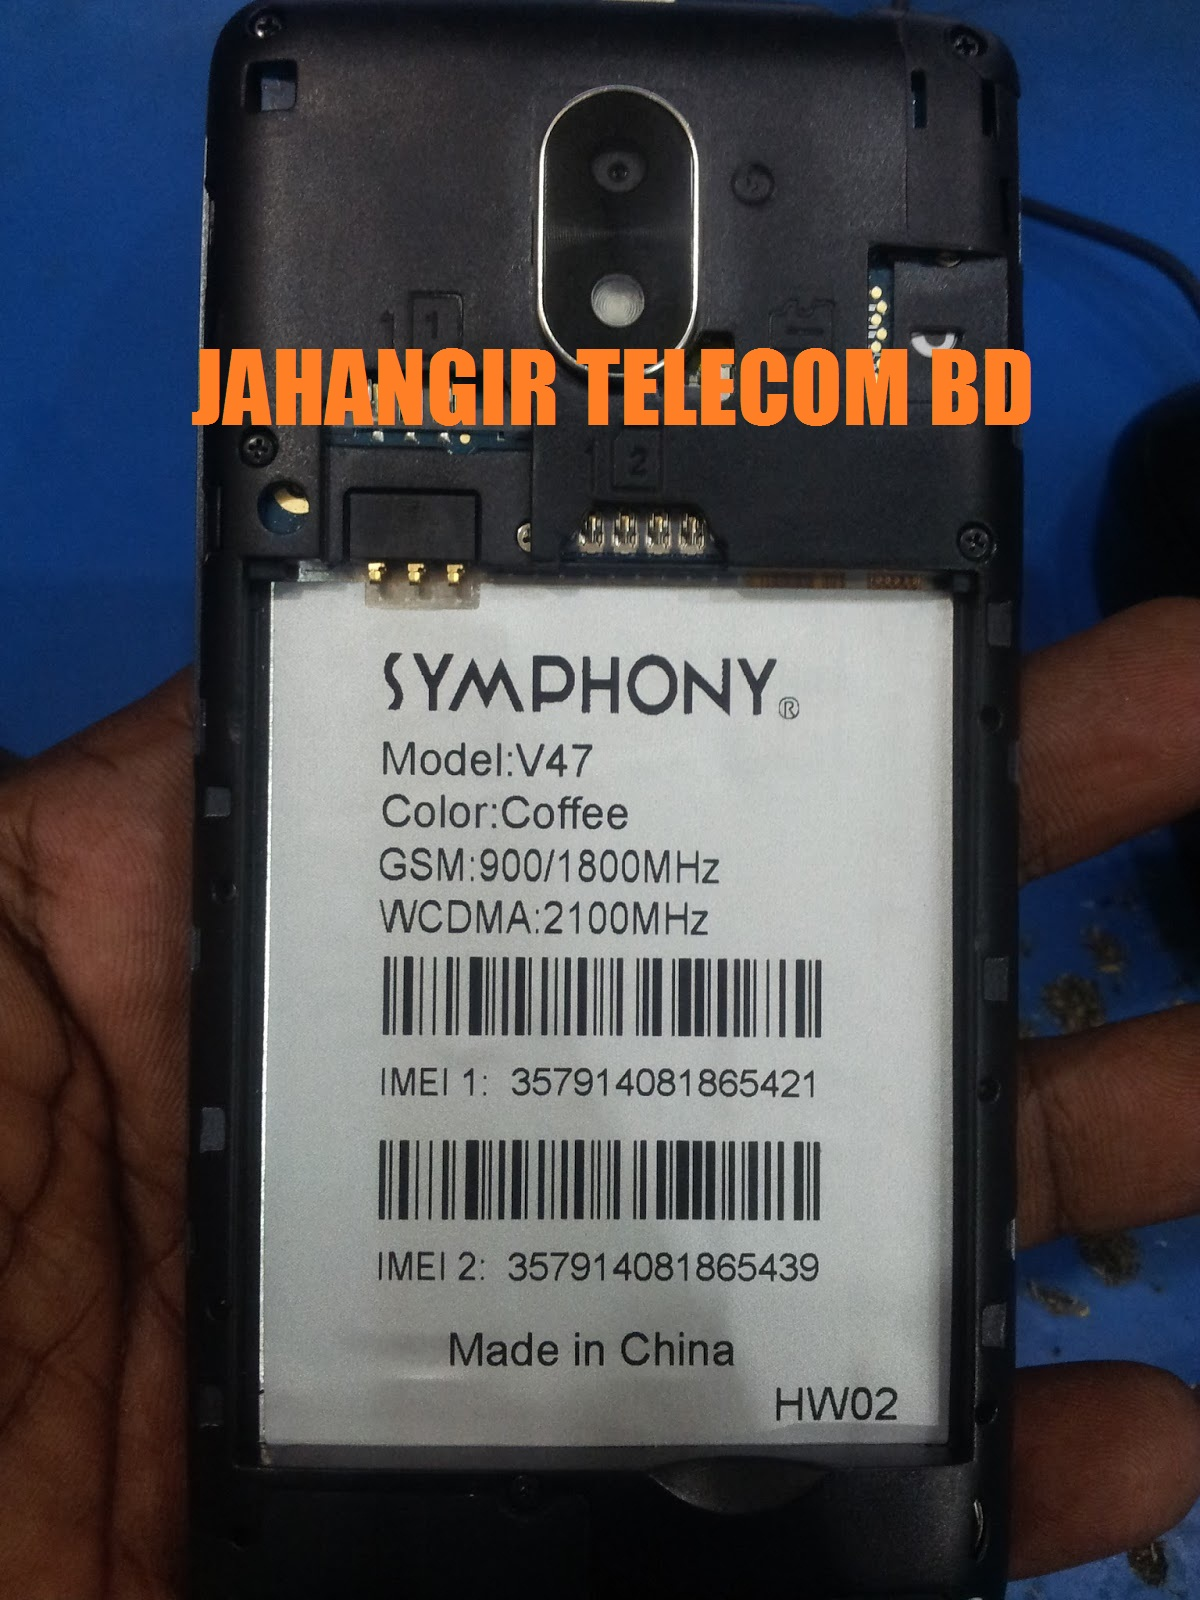 SYMPHONY V47 FLASH FILE MT6580 7 0 STOCK ROM 100% TESTED FIRMWARE NO